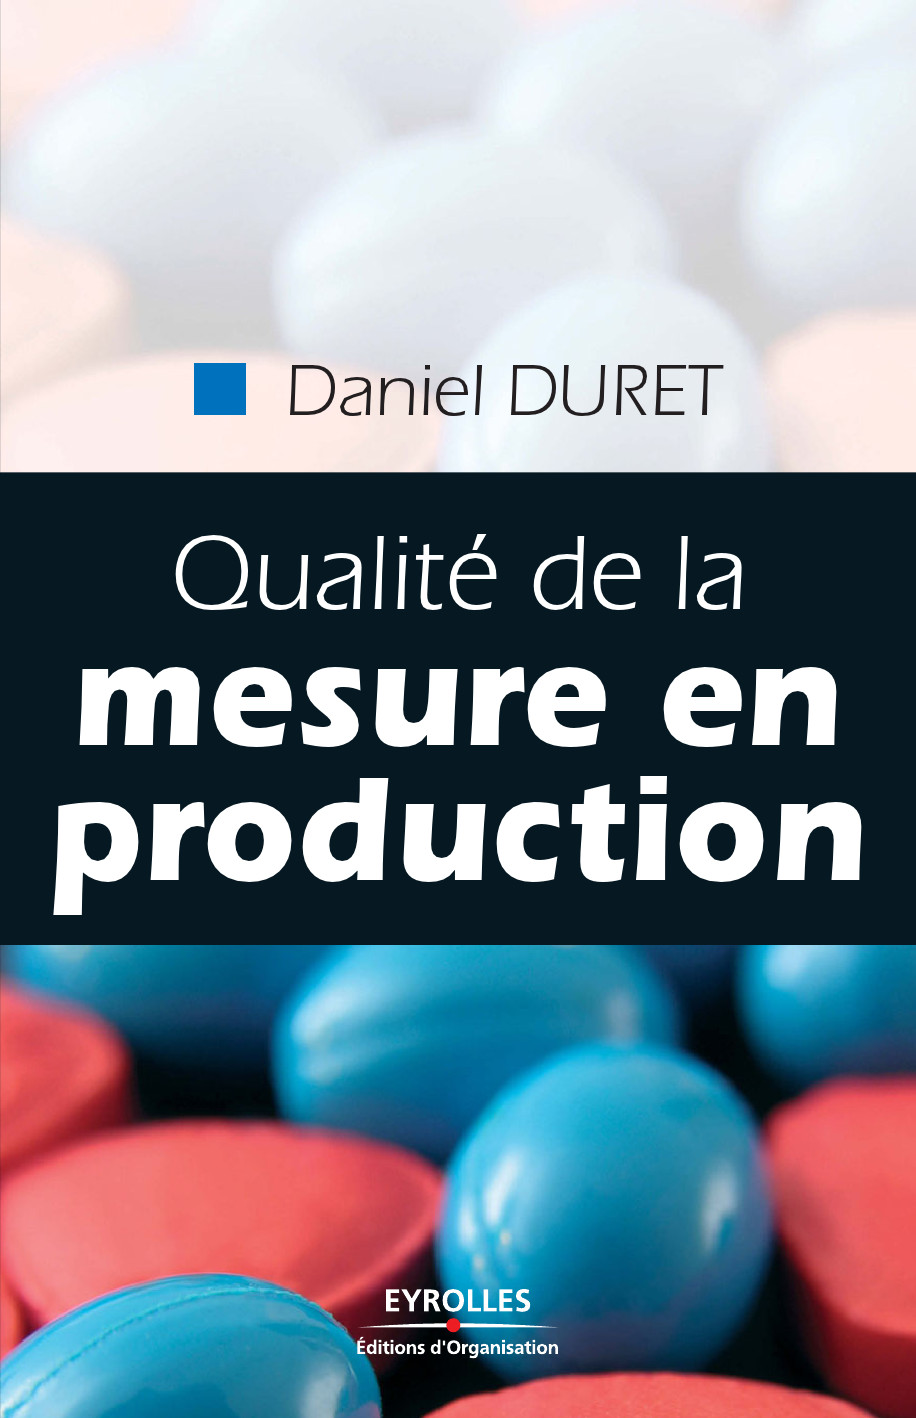 Qualité de la mesure en production